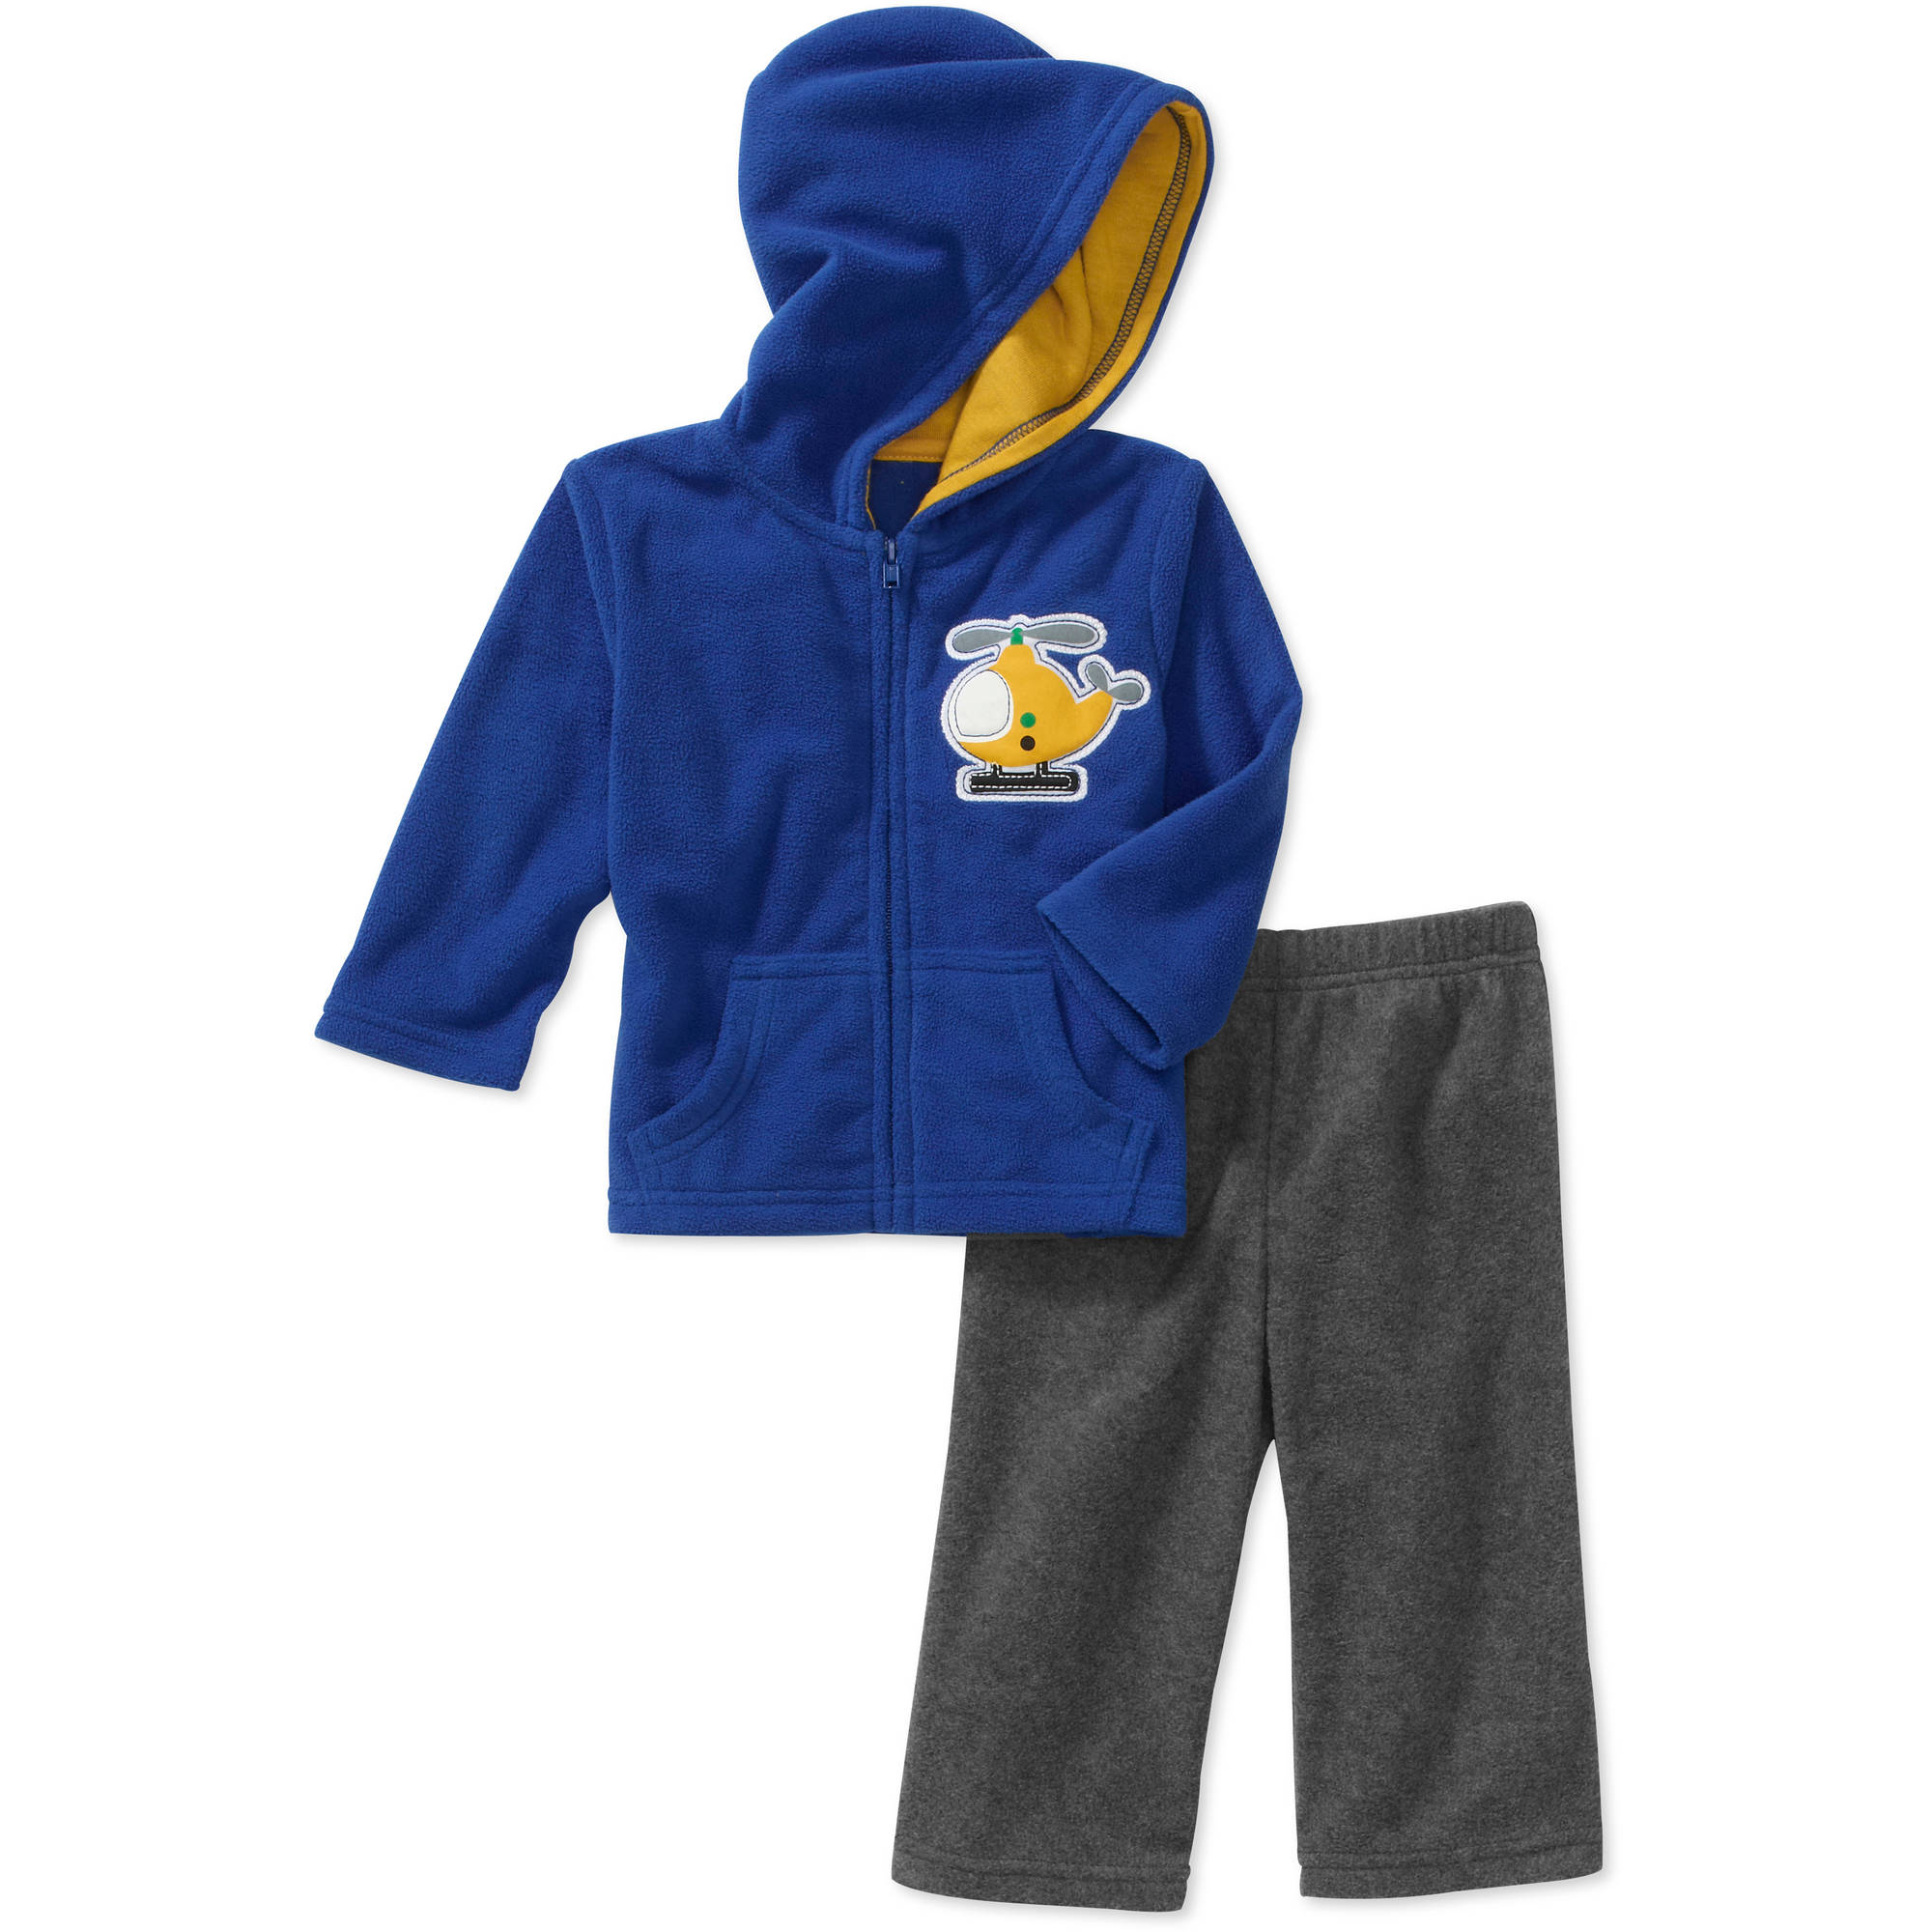 George Baby Boys' 2-Piece Applique Hoodie and Pant Set